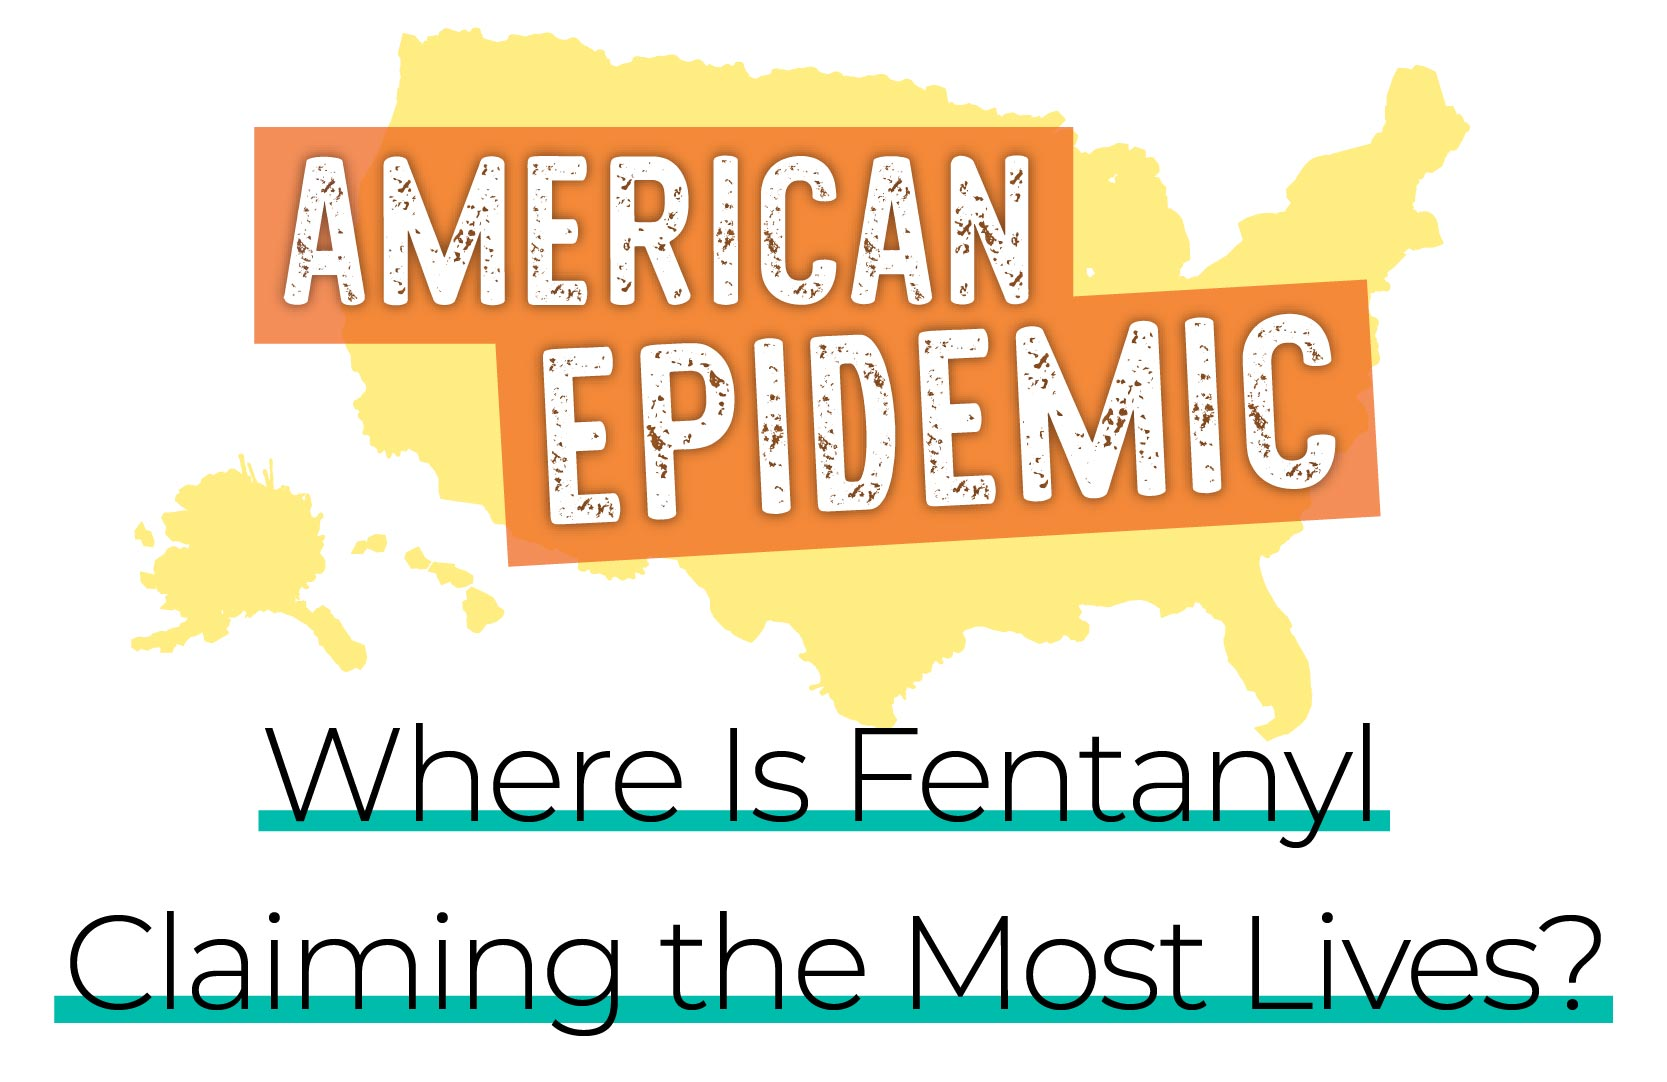 Where Is Fentanyl Claiming the Most Lives?